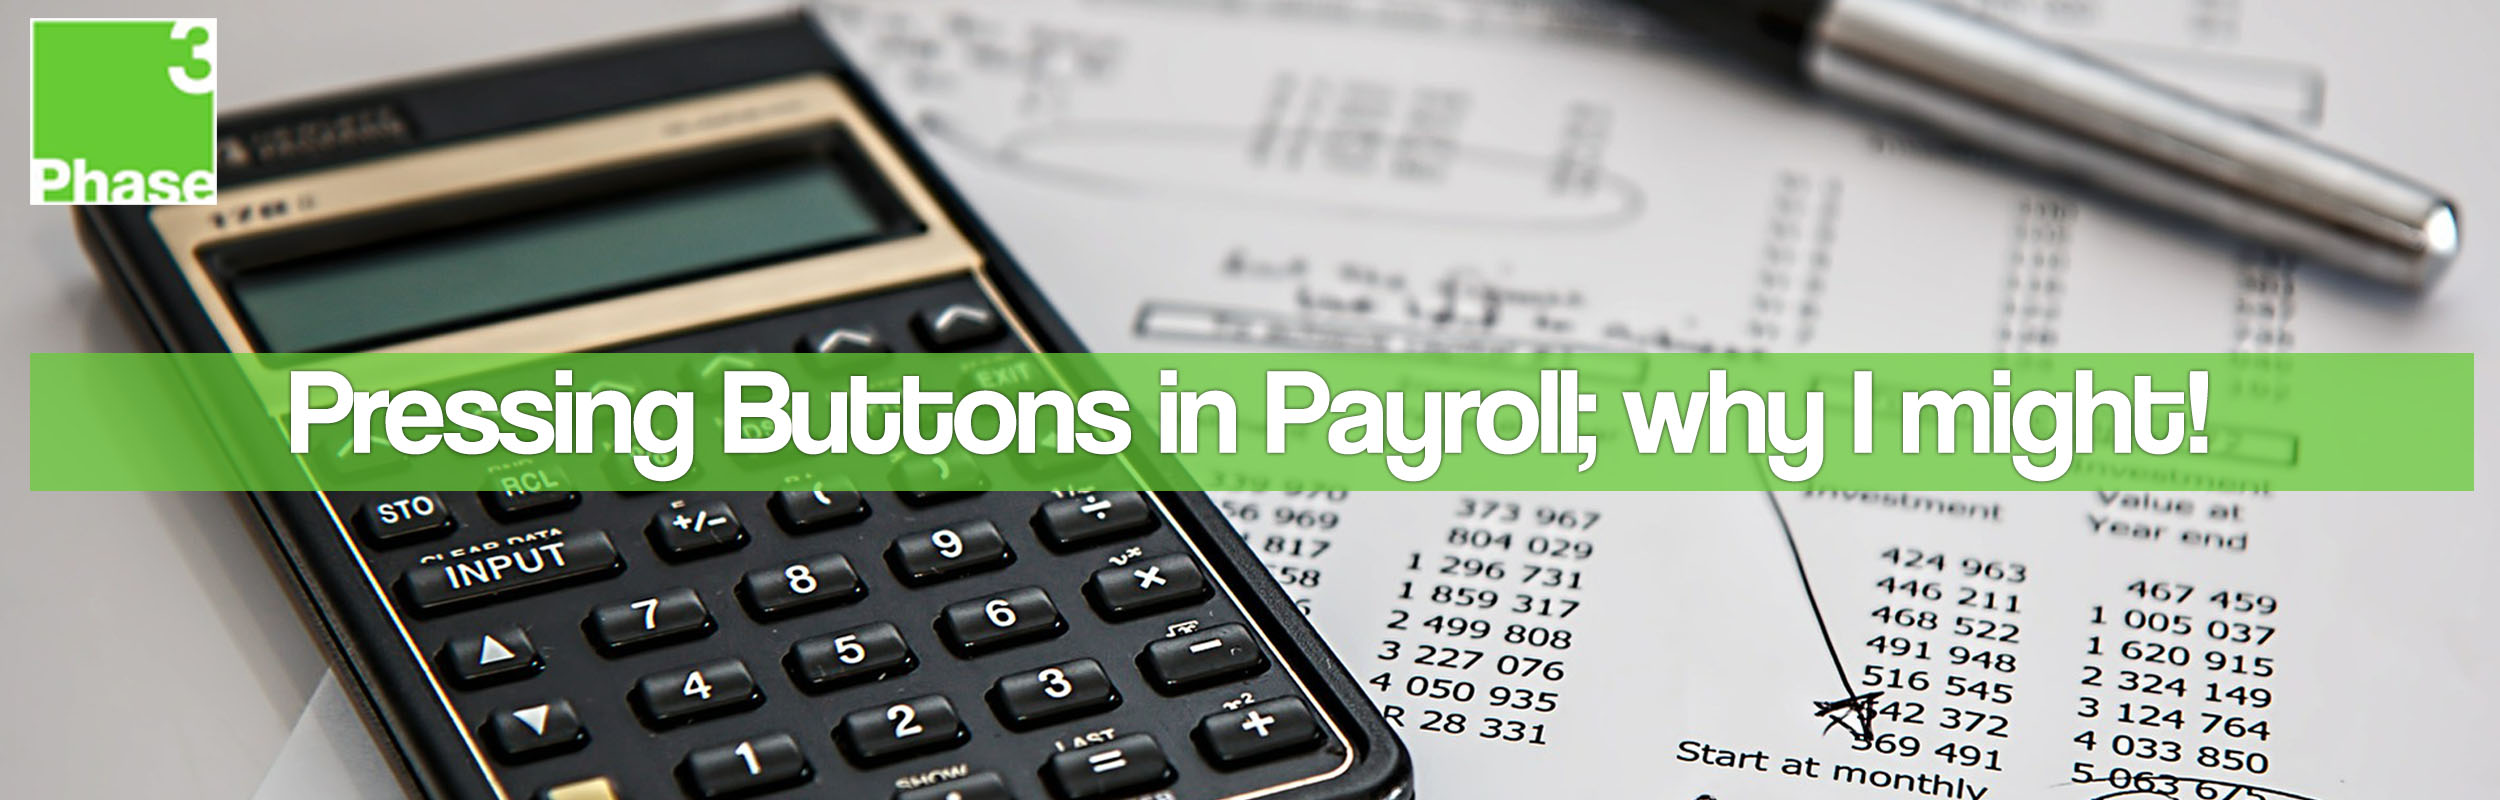 Calculator with some payroll documents